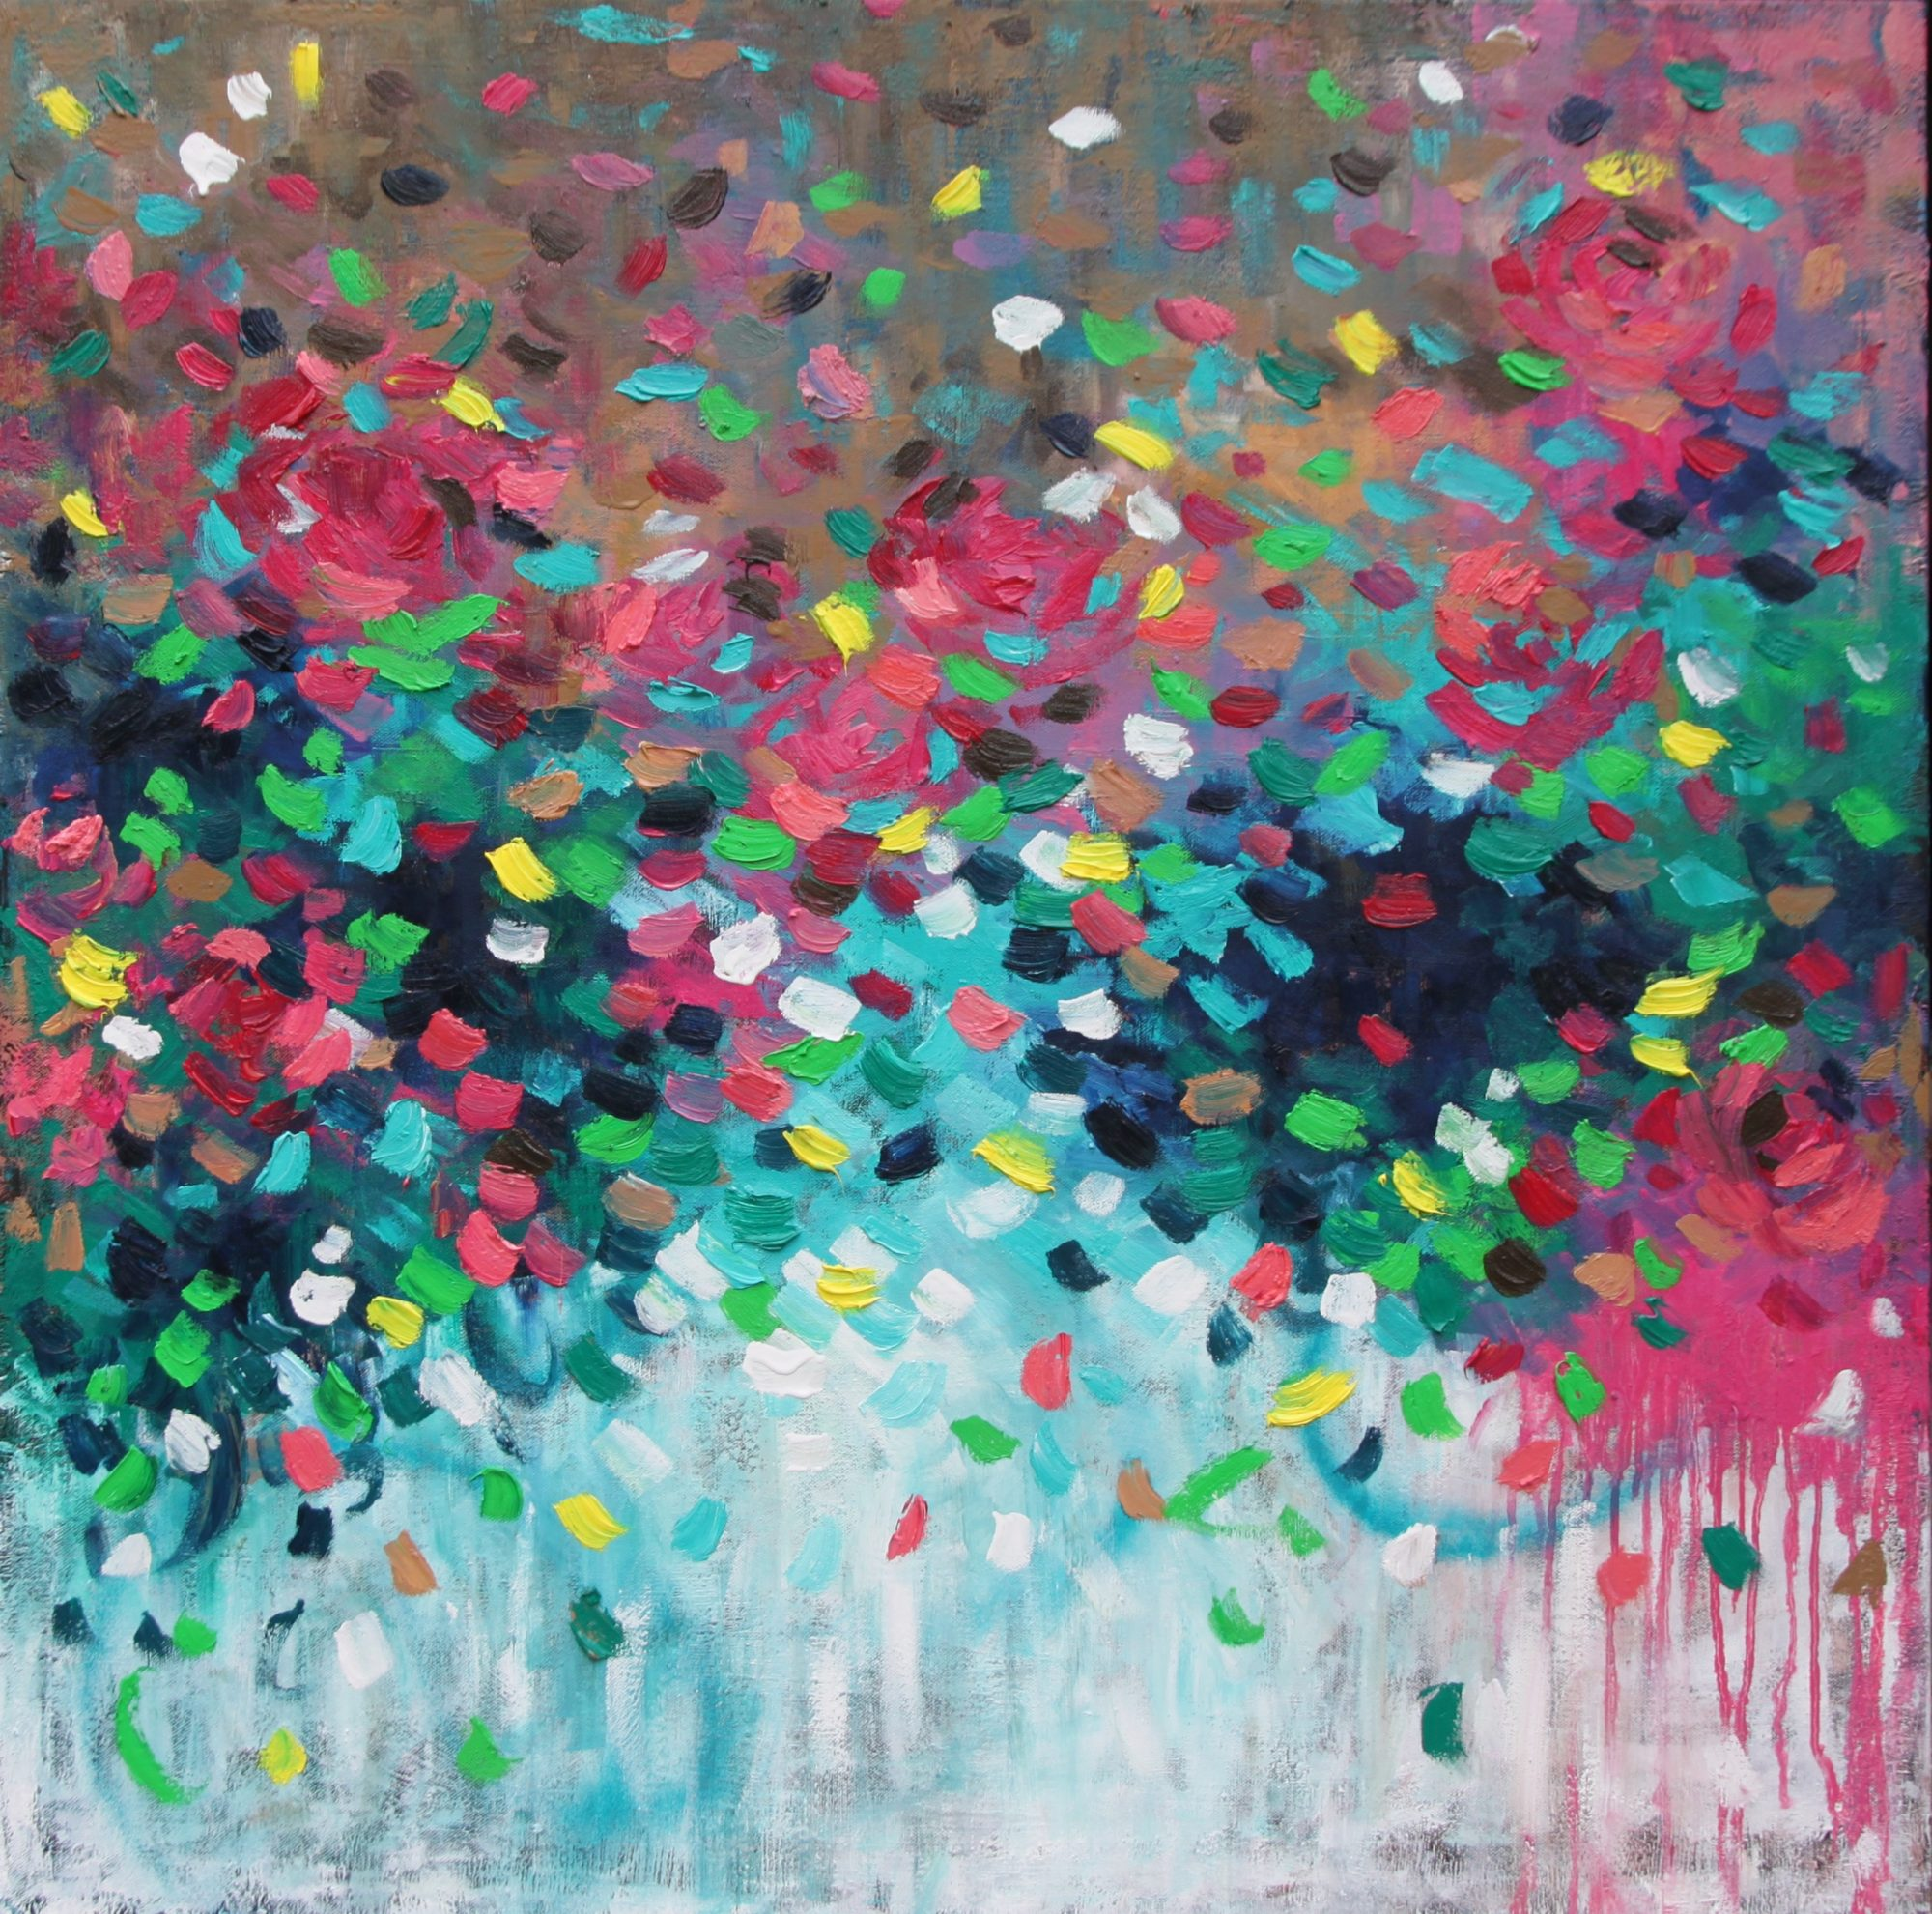 Belinda Nadwie Art Abstract Painting Sydney Artist You Make Me Love You